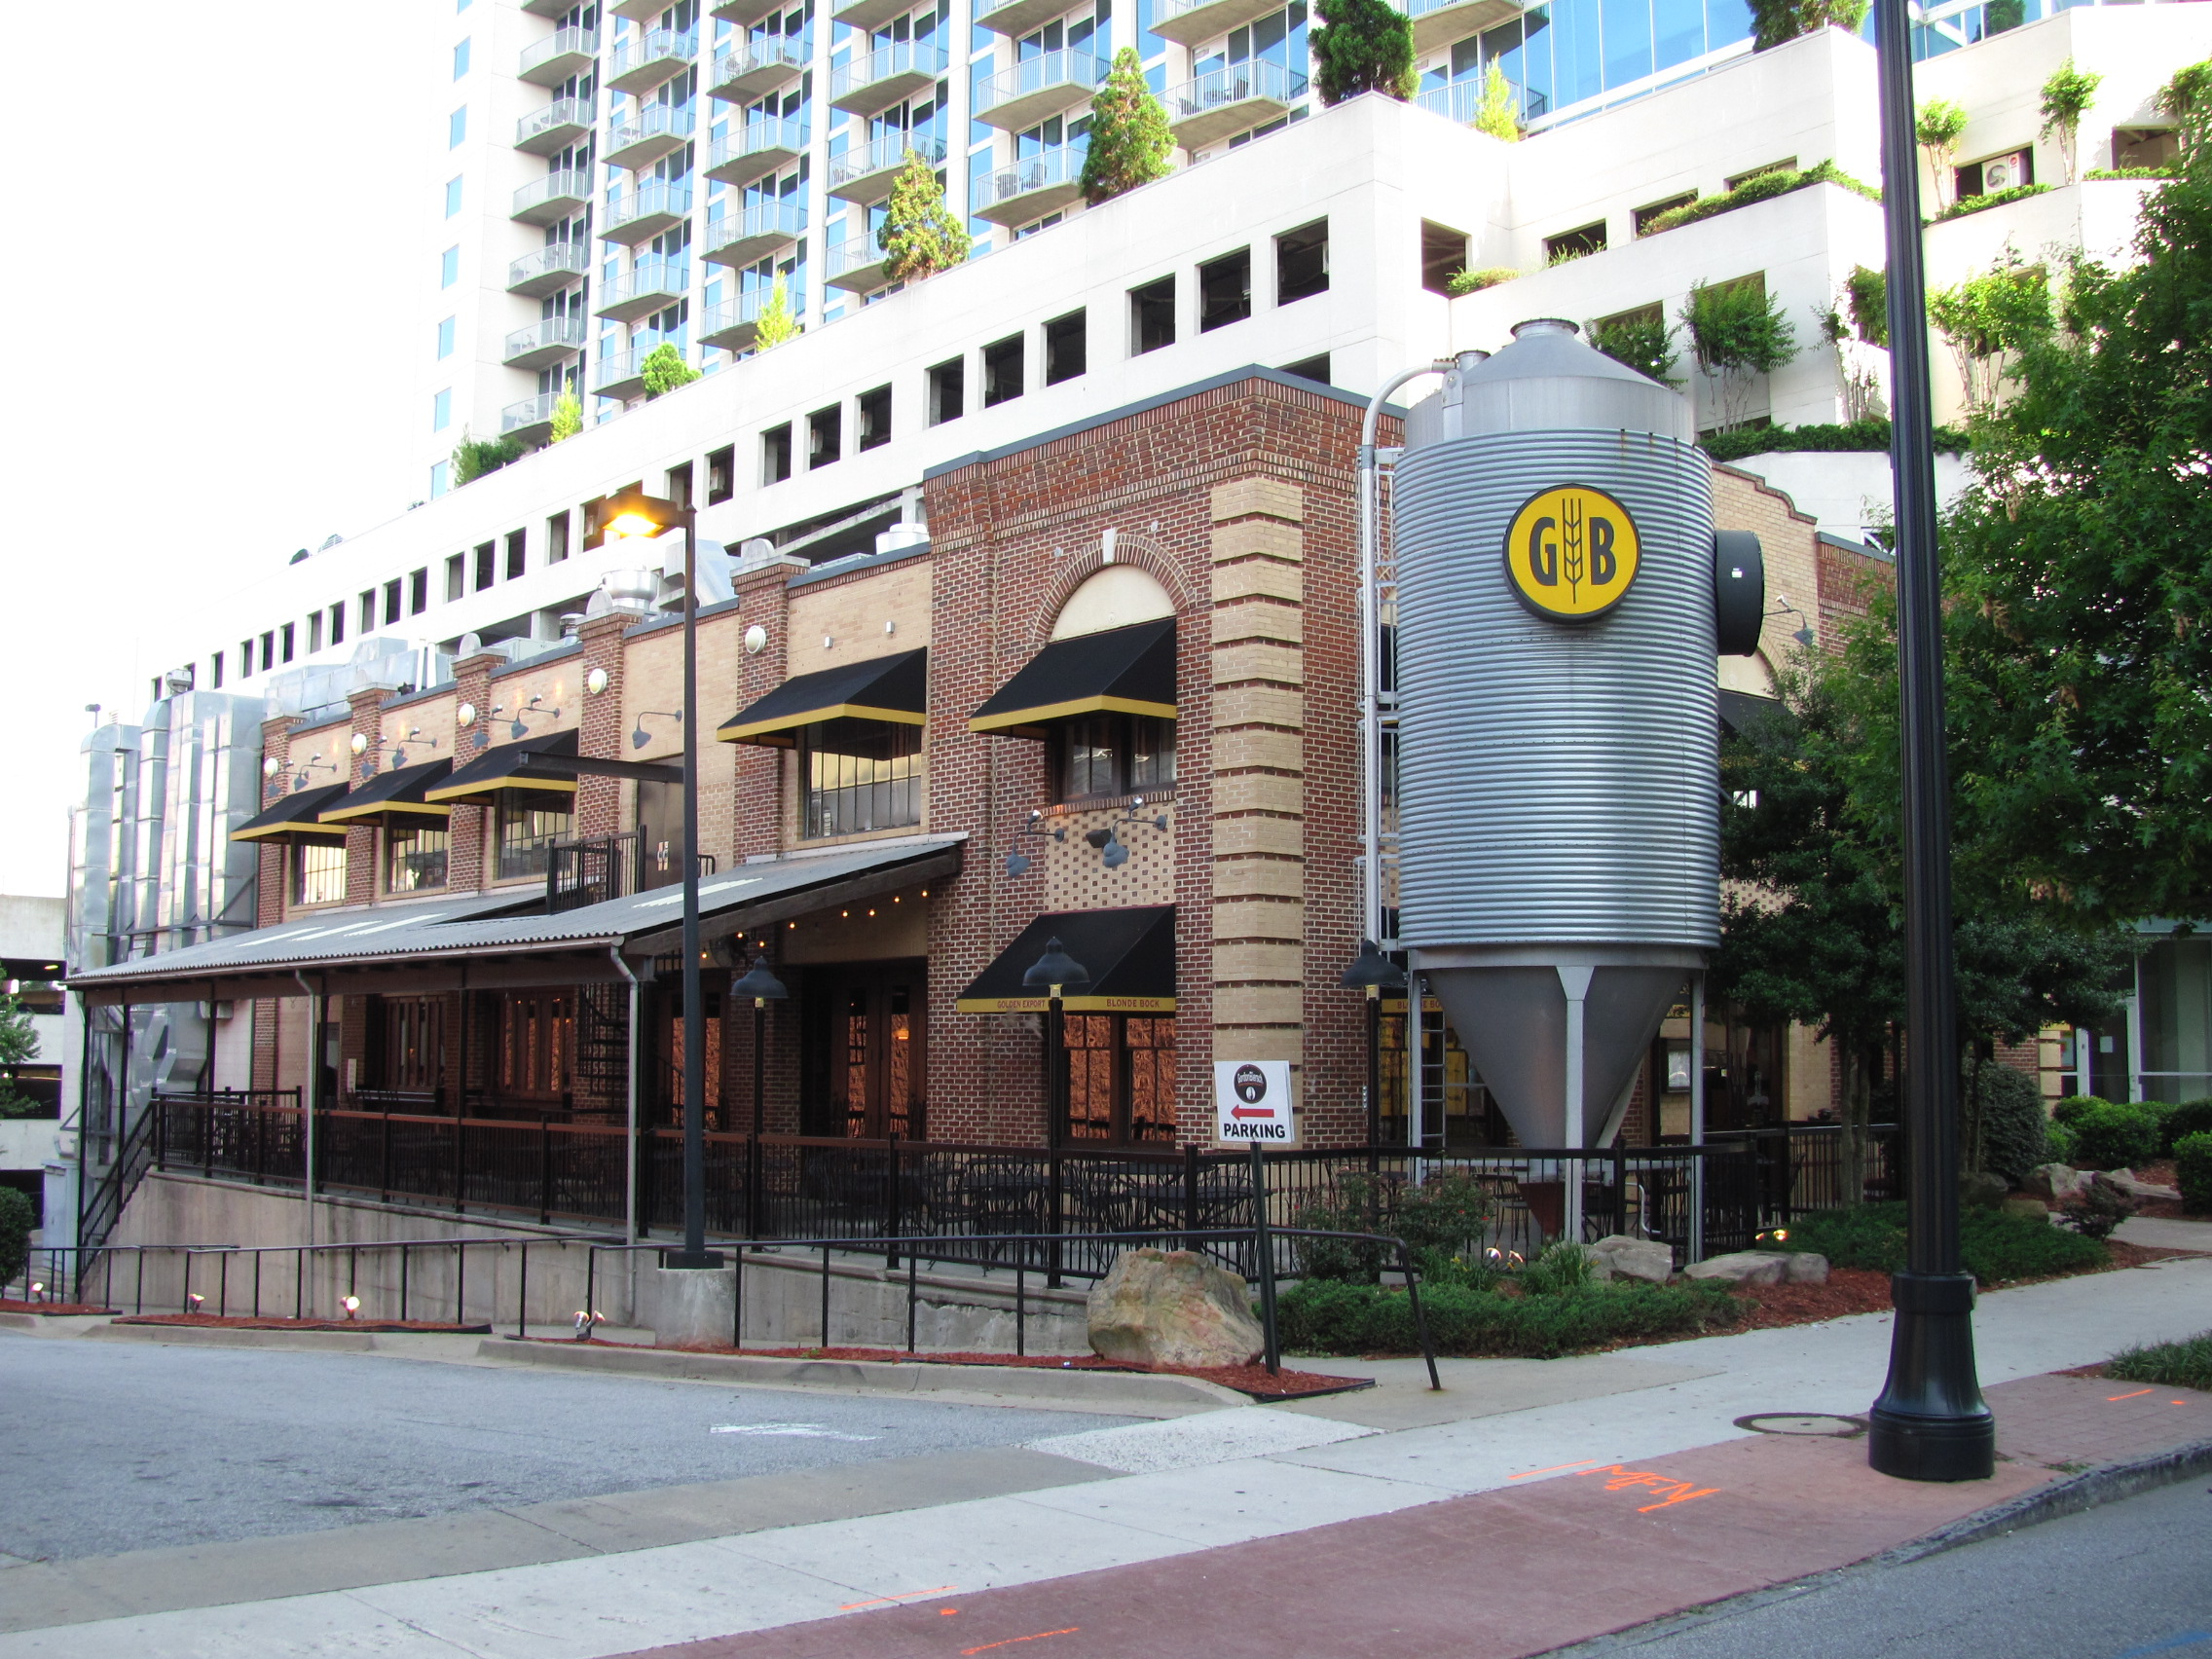 File Gordon Biersch Brewery Restaurant Midtown Atlanta Ga Jpg